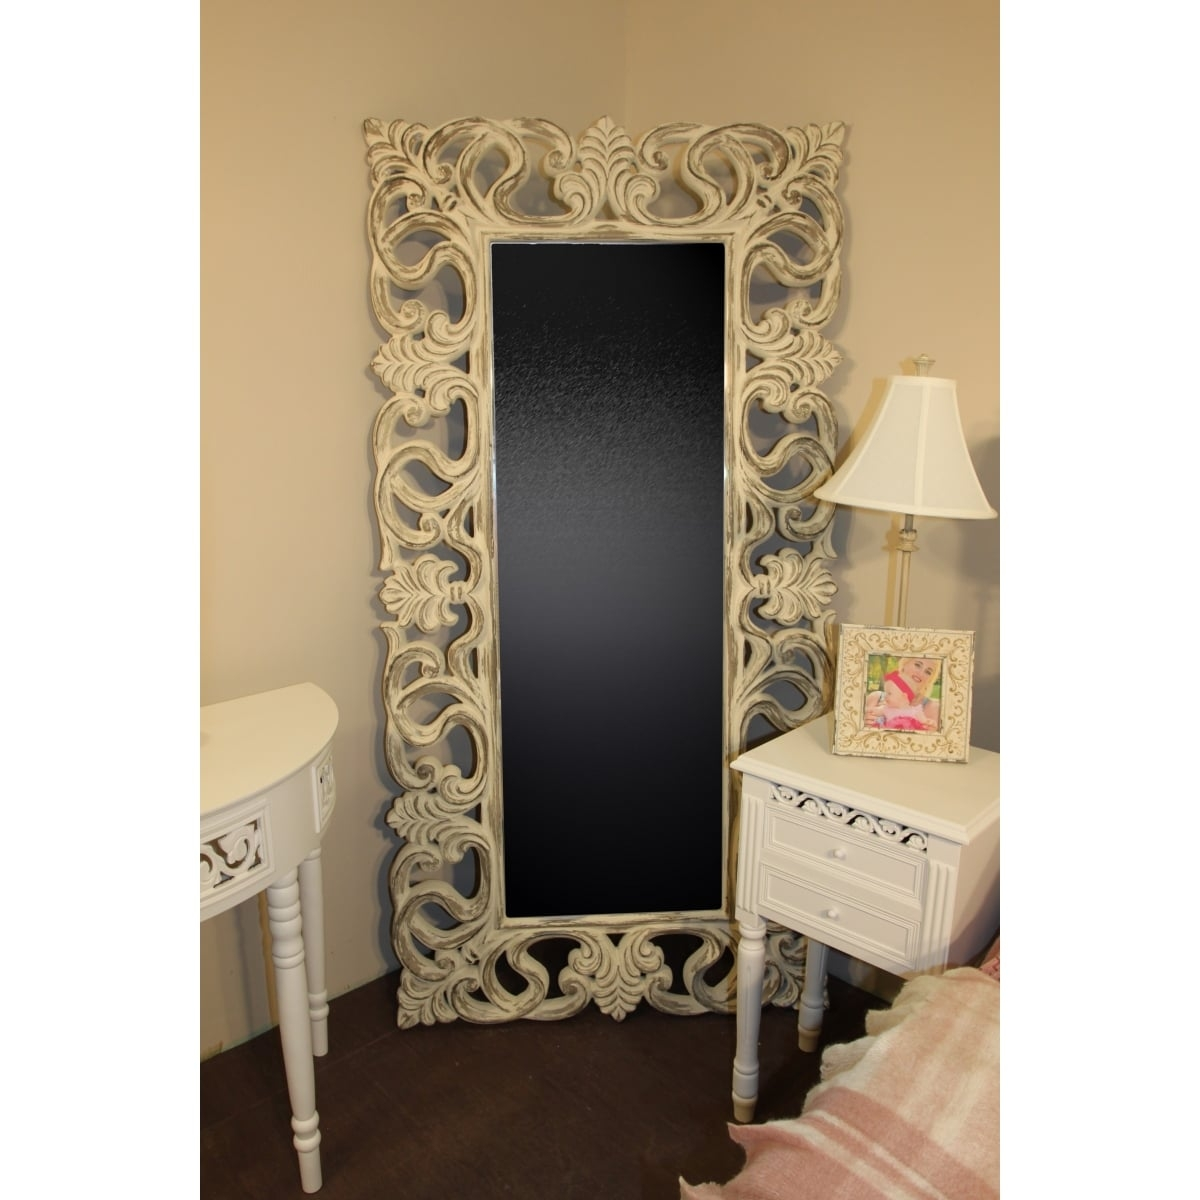 Full Length Mirror Shab Chic Swanky Interiors Throughout Shabby Chic Mirrors Cheap (Image 9 of 15)